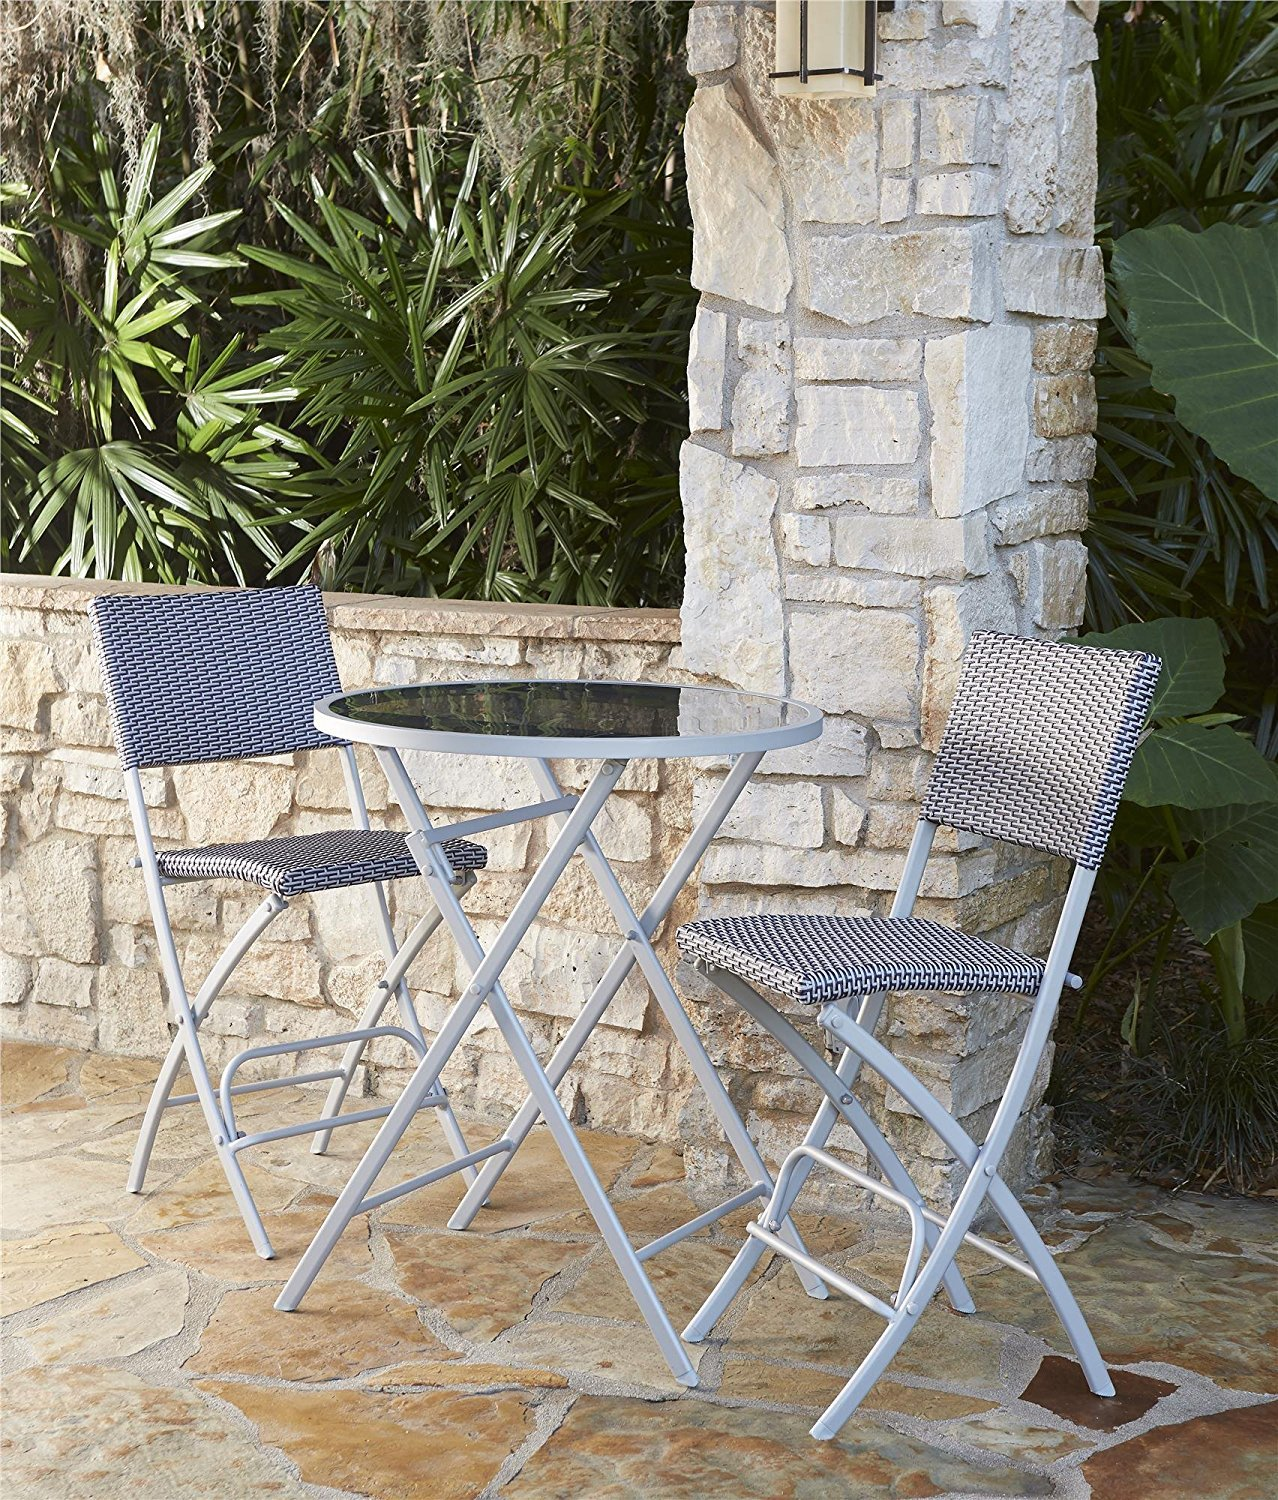 COSCO Outdoor Living Transitional 3 Piece Steel Woven Wicker Delray High Top Folding Patio Bistro Set, Blue and Gray Resin Wicker, Steel Frame